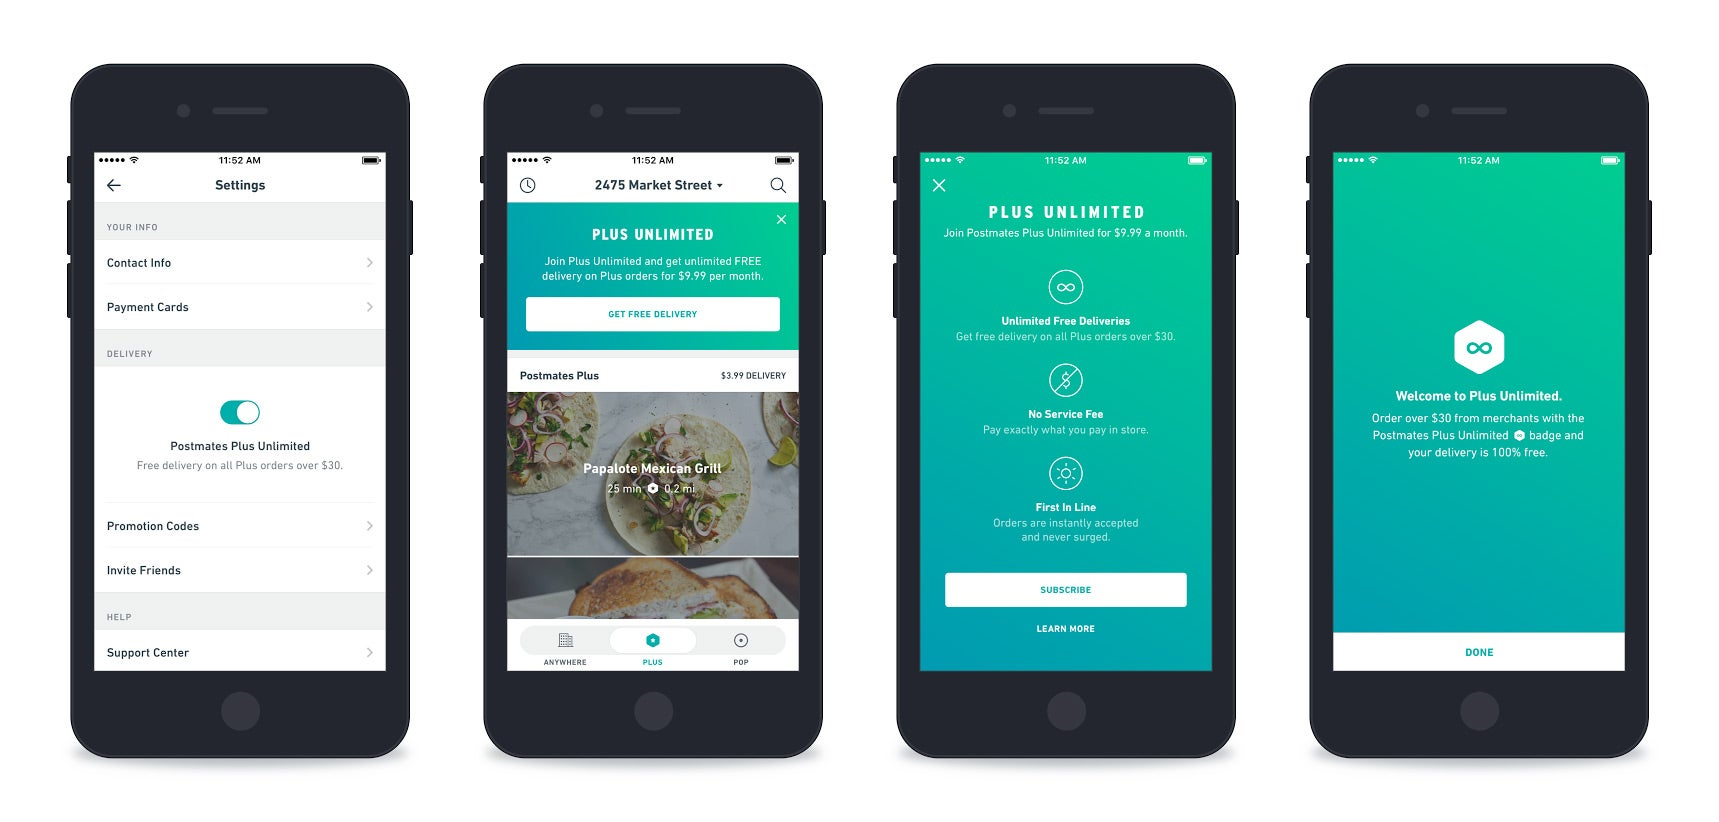 Unlimited Deliveries for $9.99 a Month Sounds Insane. For Postmates, It's the Future.